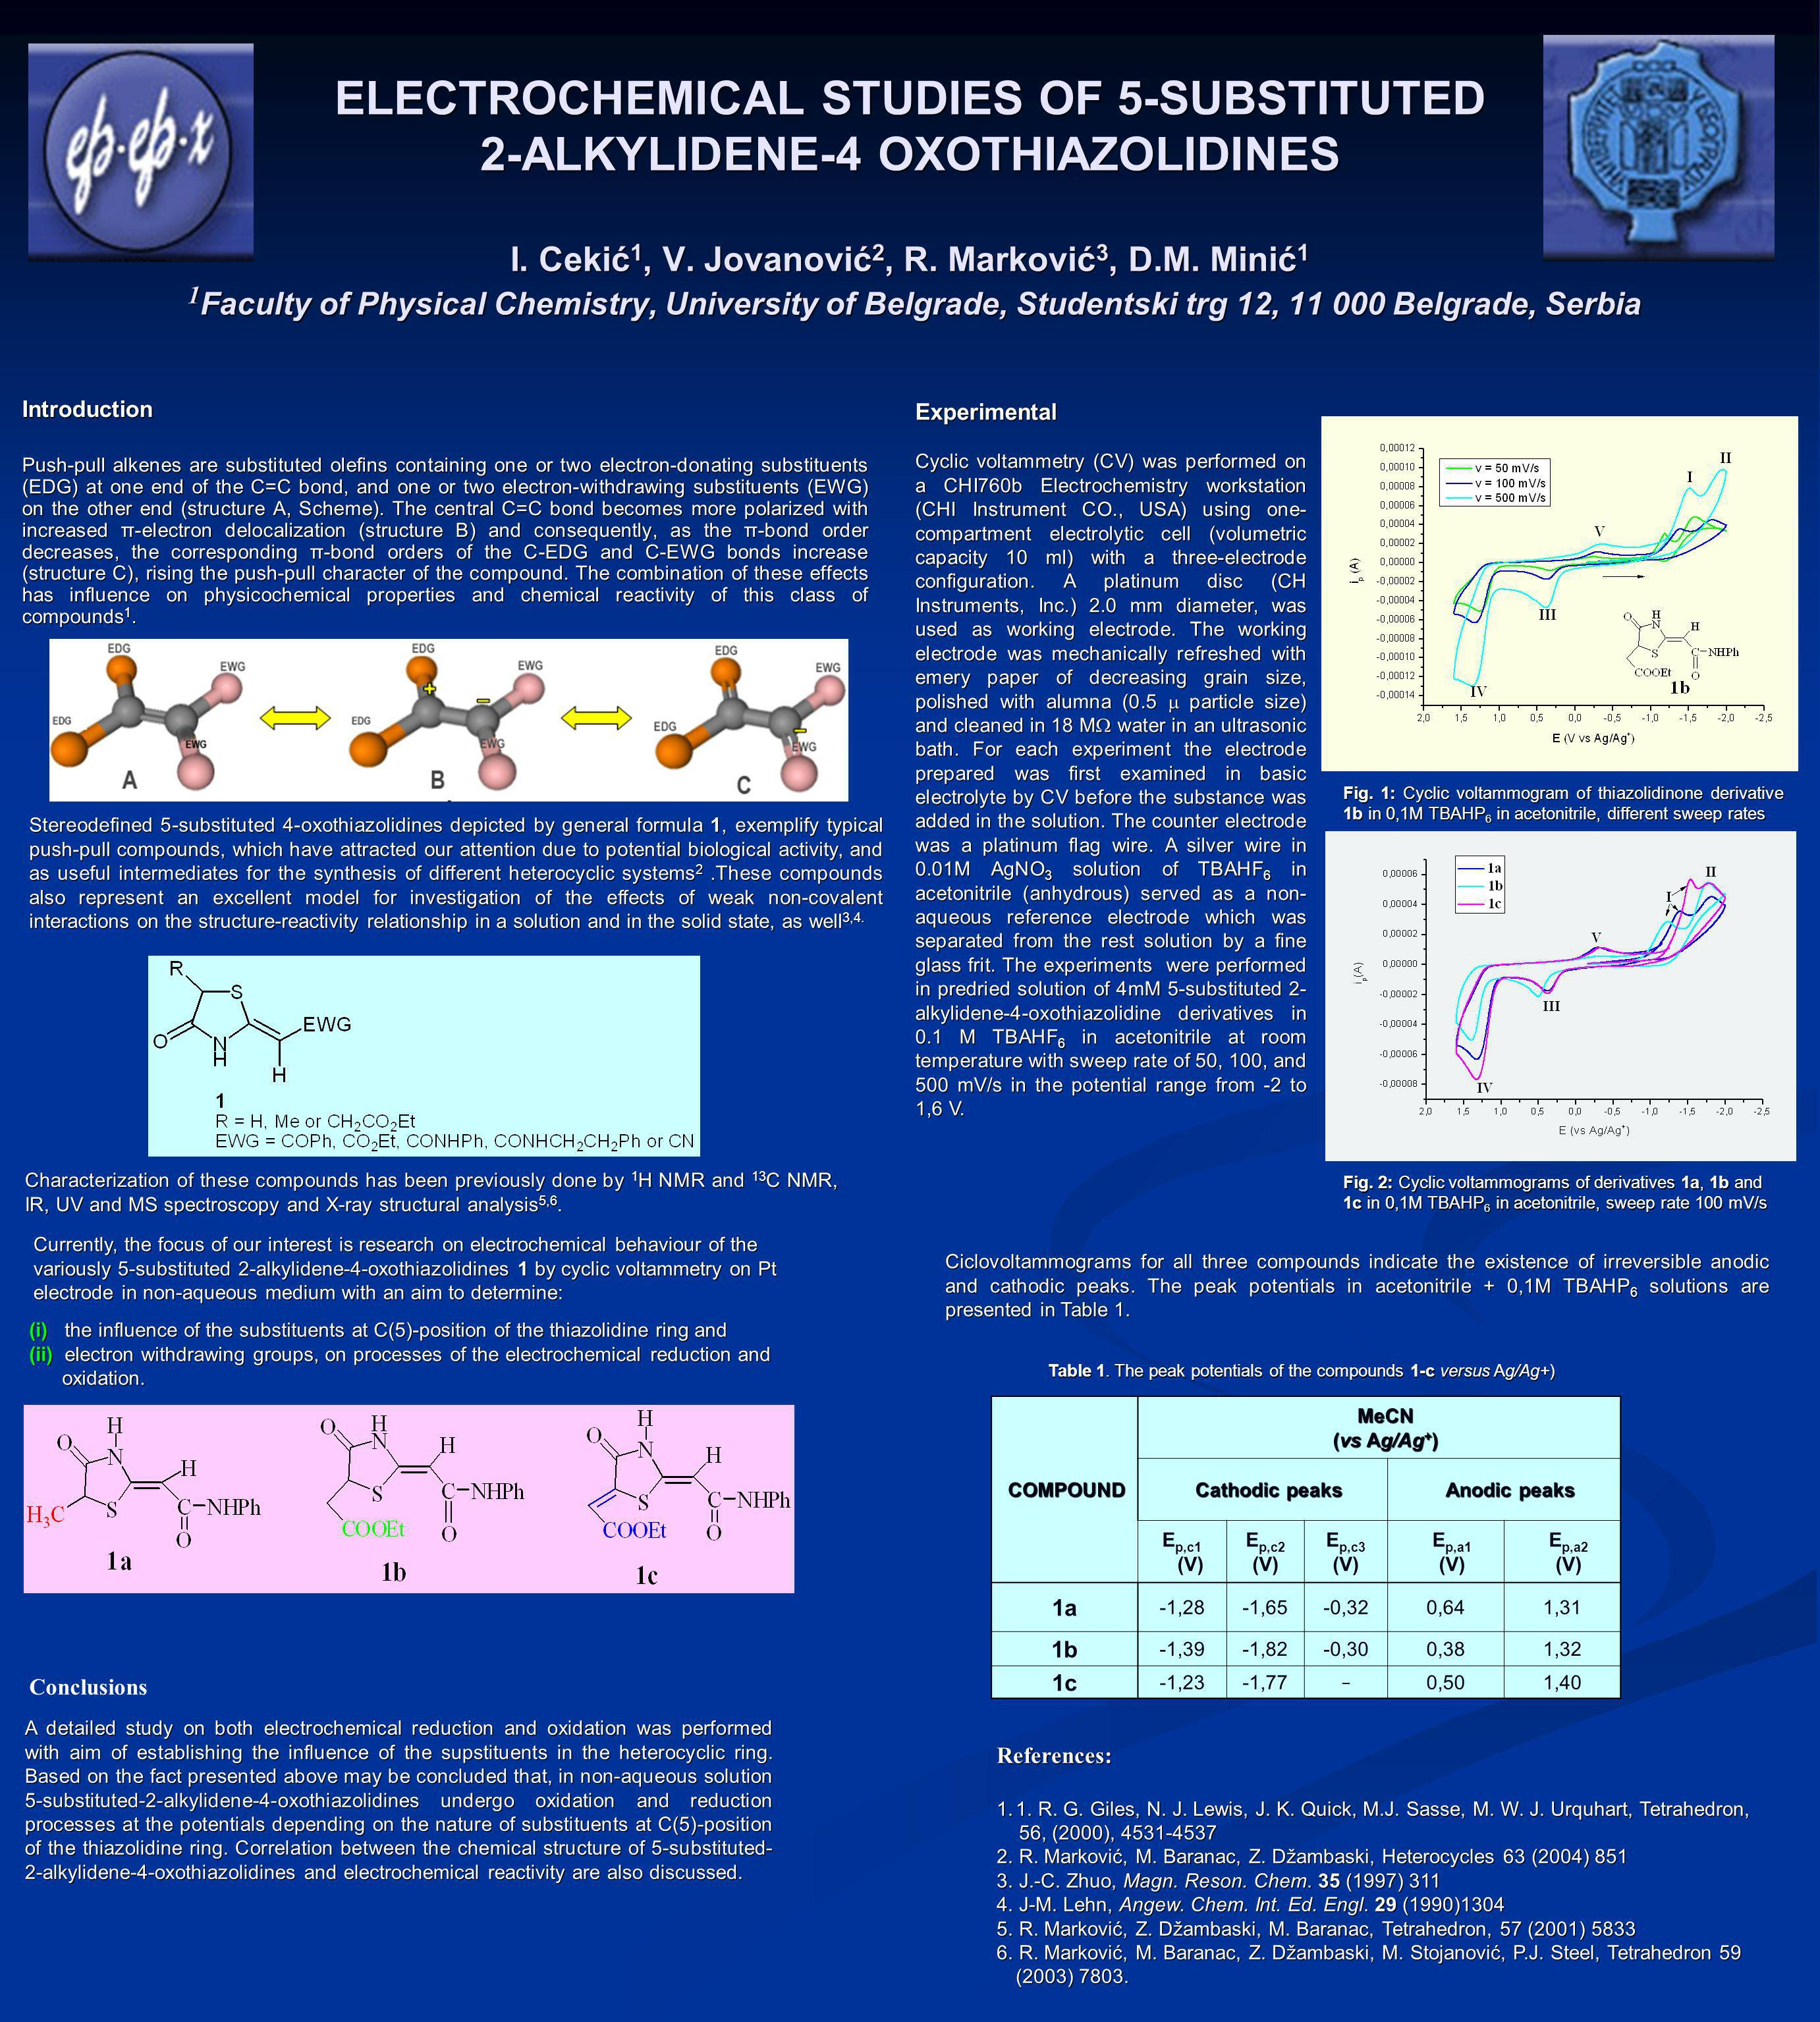 ELECTROCHEMICAL STUDIES OF 5-SUBSTITUTED 2-ALKYLIDENE-4 OXOTHIAZOLIDINES I.